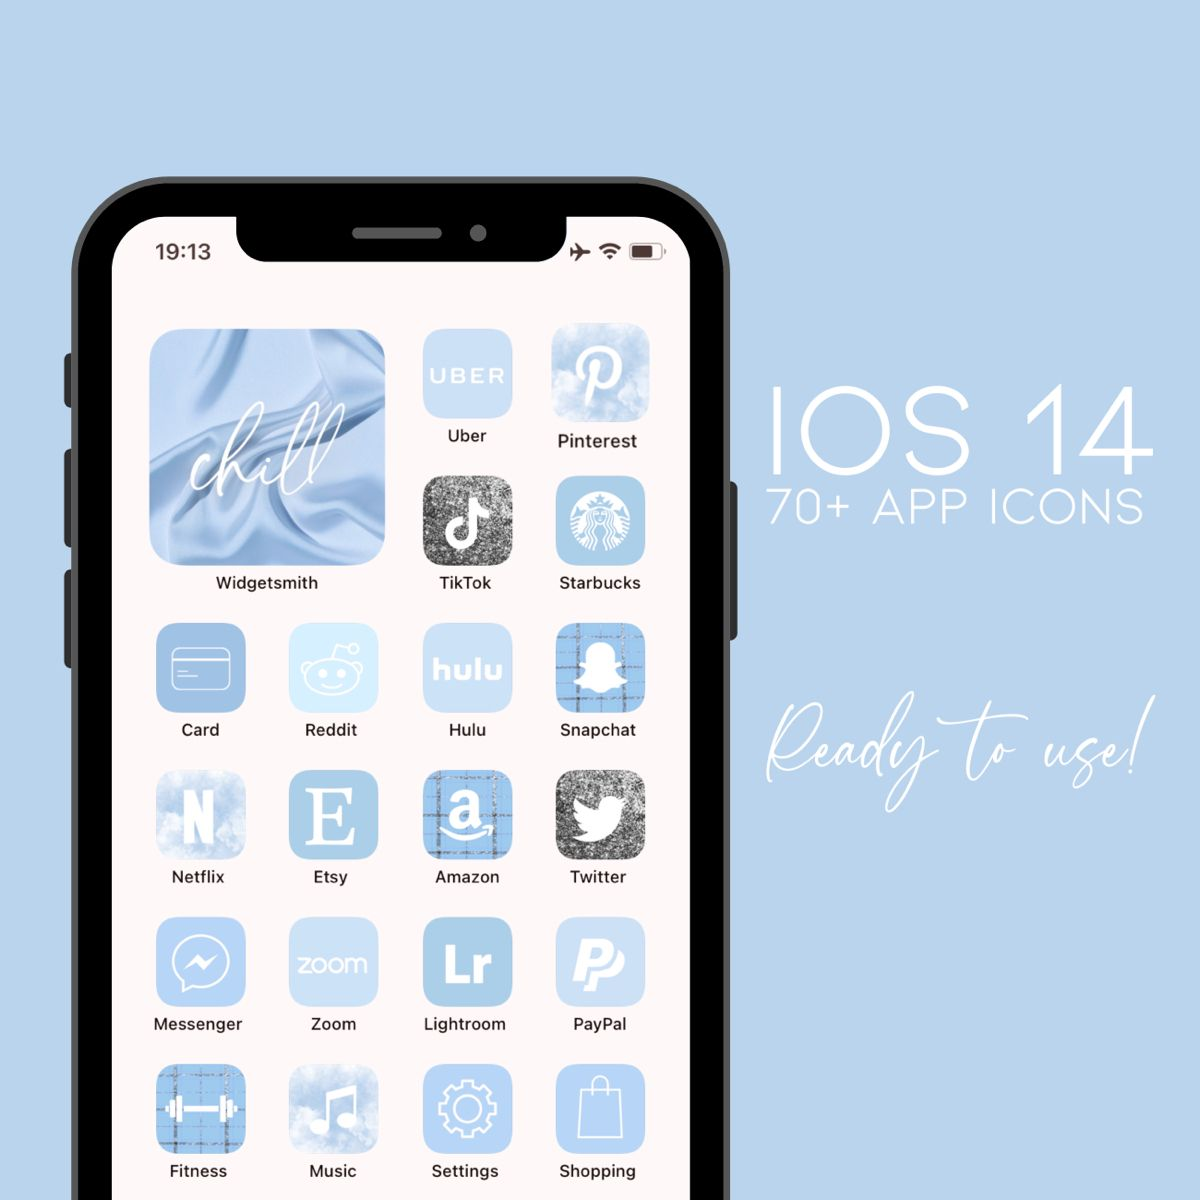 30 000 Ios 14 App Icons Sky Blue Custom Your Iphone Home Screen Widget With Words Aesthetic App Covers App Icon Homescreen Iphone App Covers